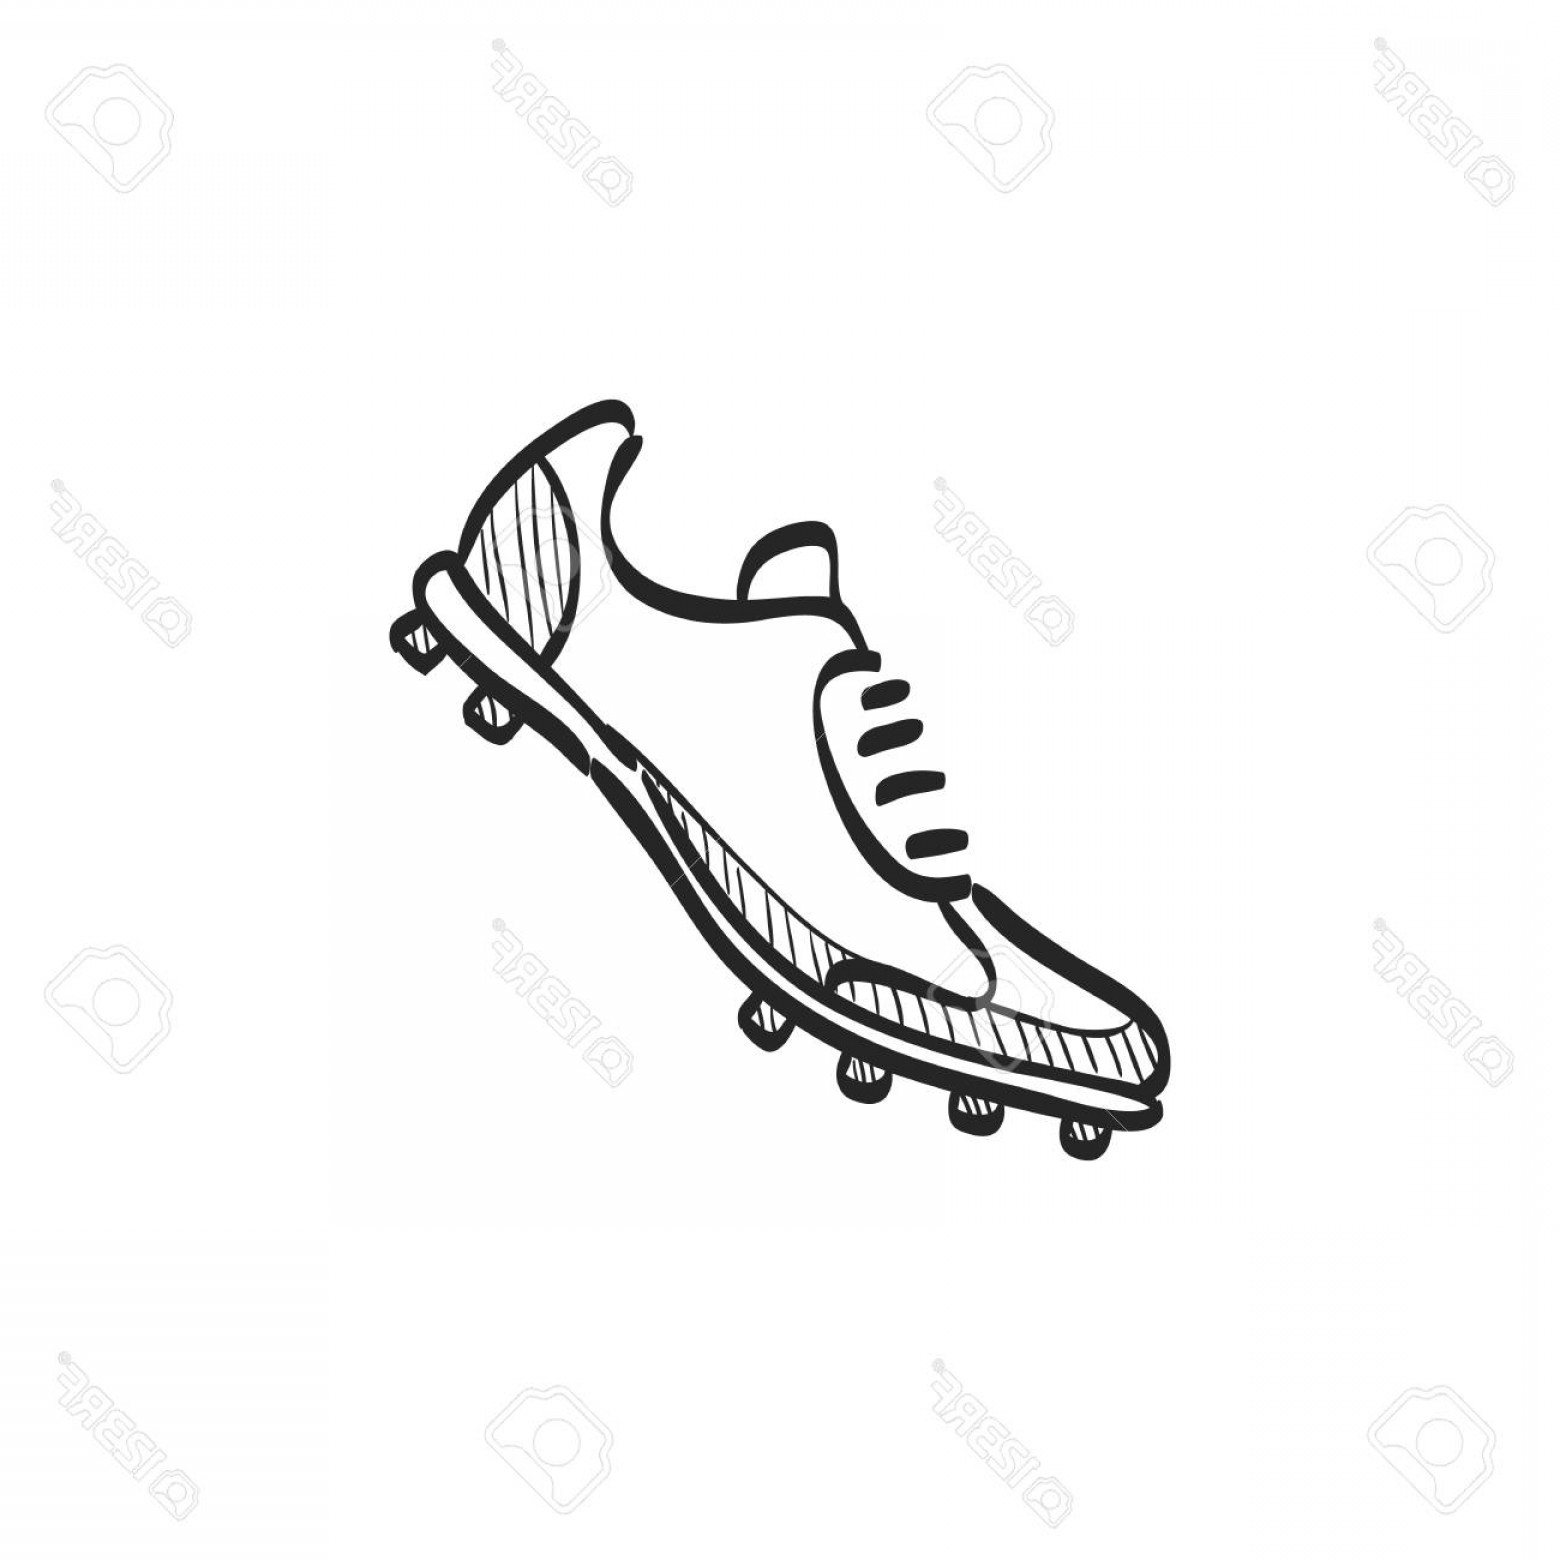 Vector Football Laces And Lines: Photostock Vector Soccer Shoe Icon In Doodle Sketch Lines Sport Football Foot Protection